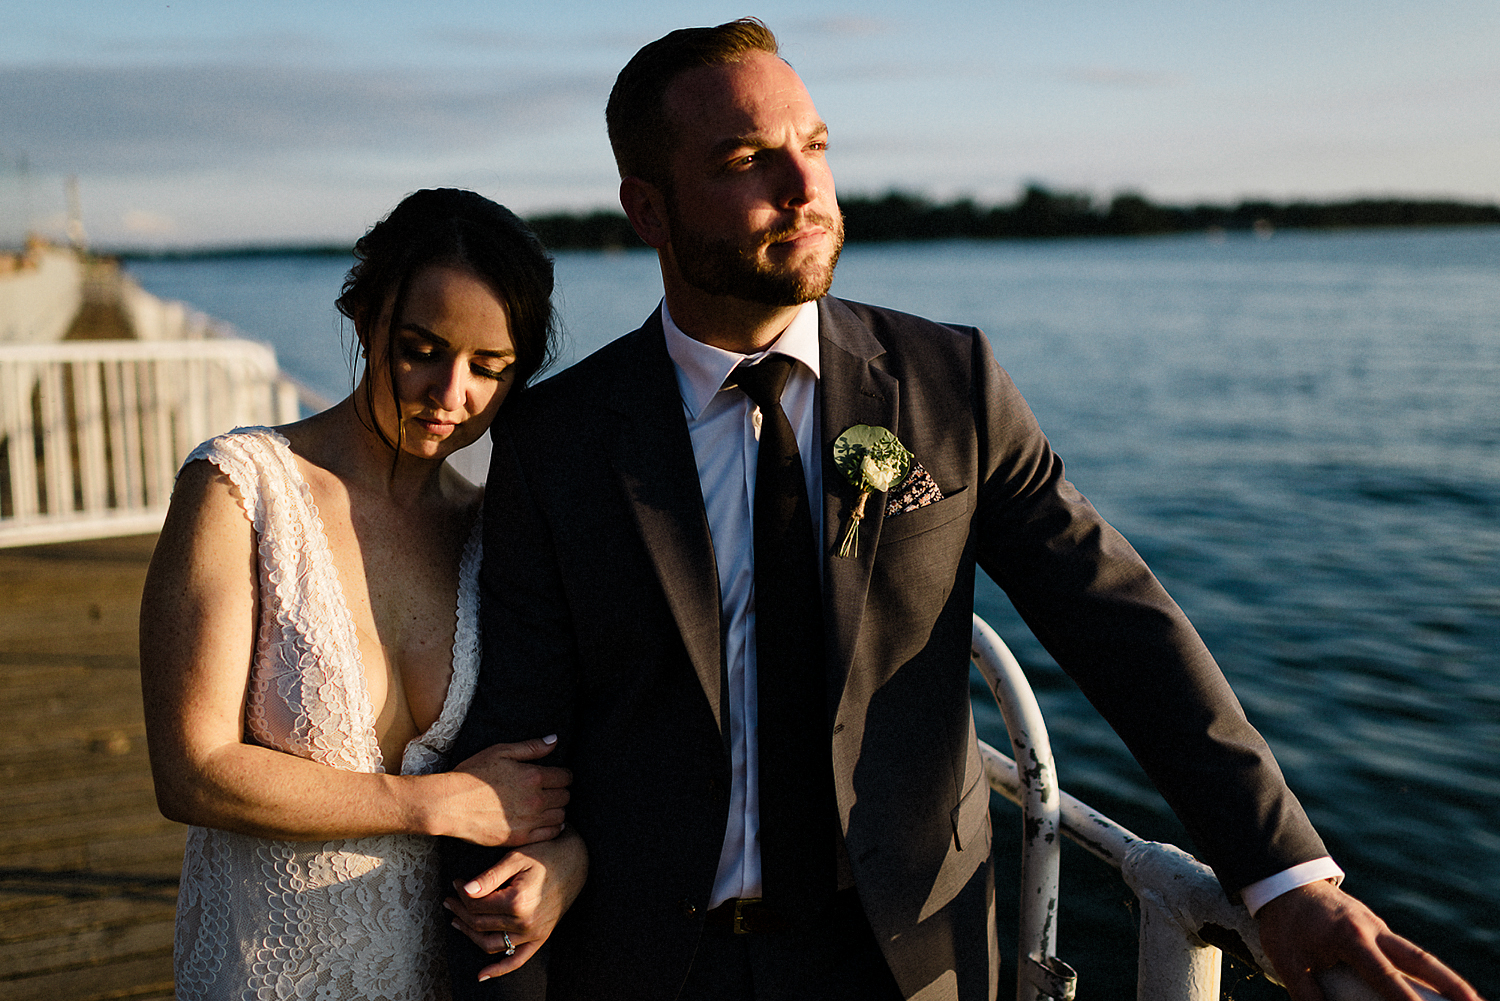 Best-Wedding-photographers-Toronto-NAtural-Candid-wedding-photography-Airship37-Sunset-Portrait-editorial-quiet-moment.jpg